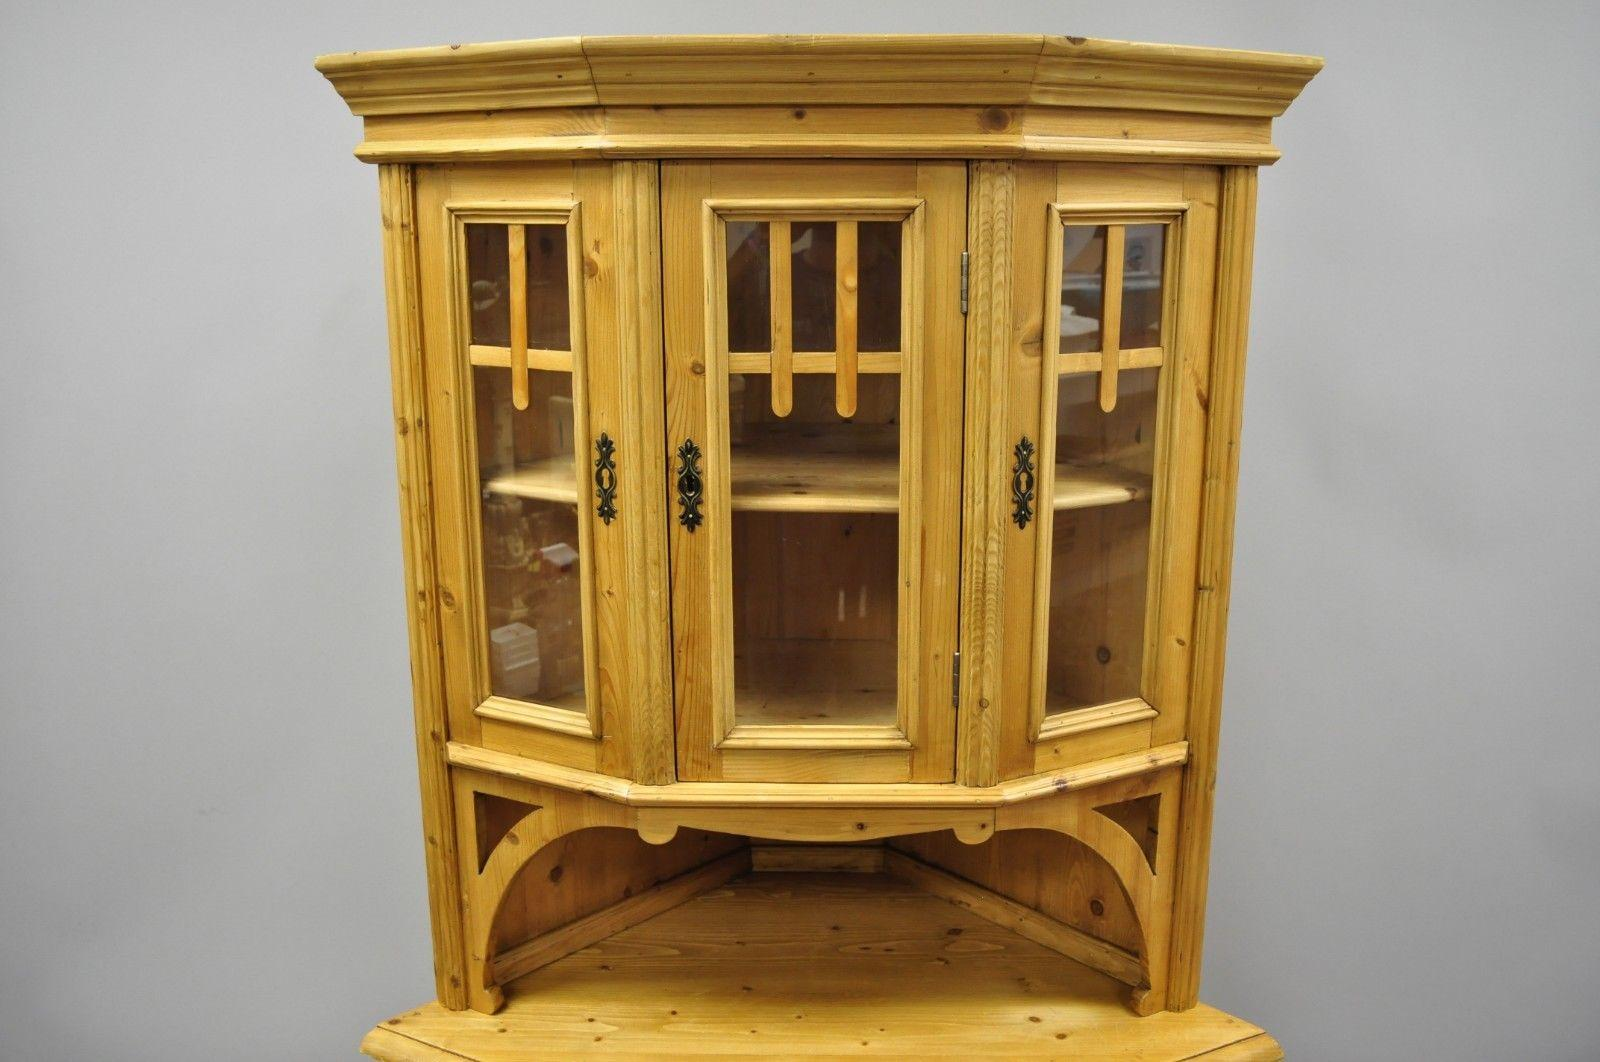 Pine Wood Country French Primitive Corner Cupboard Cabinet. Item Features  Solid Wood Construction, Beautiful